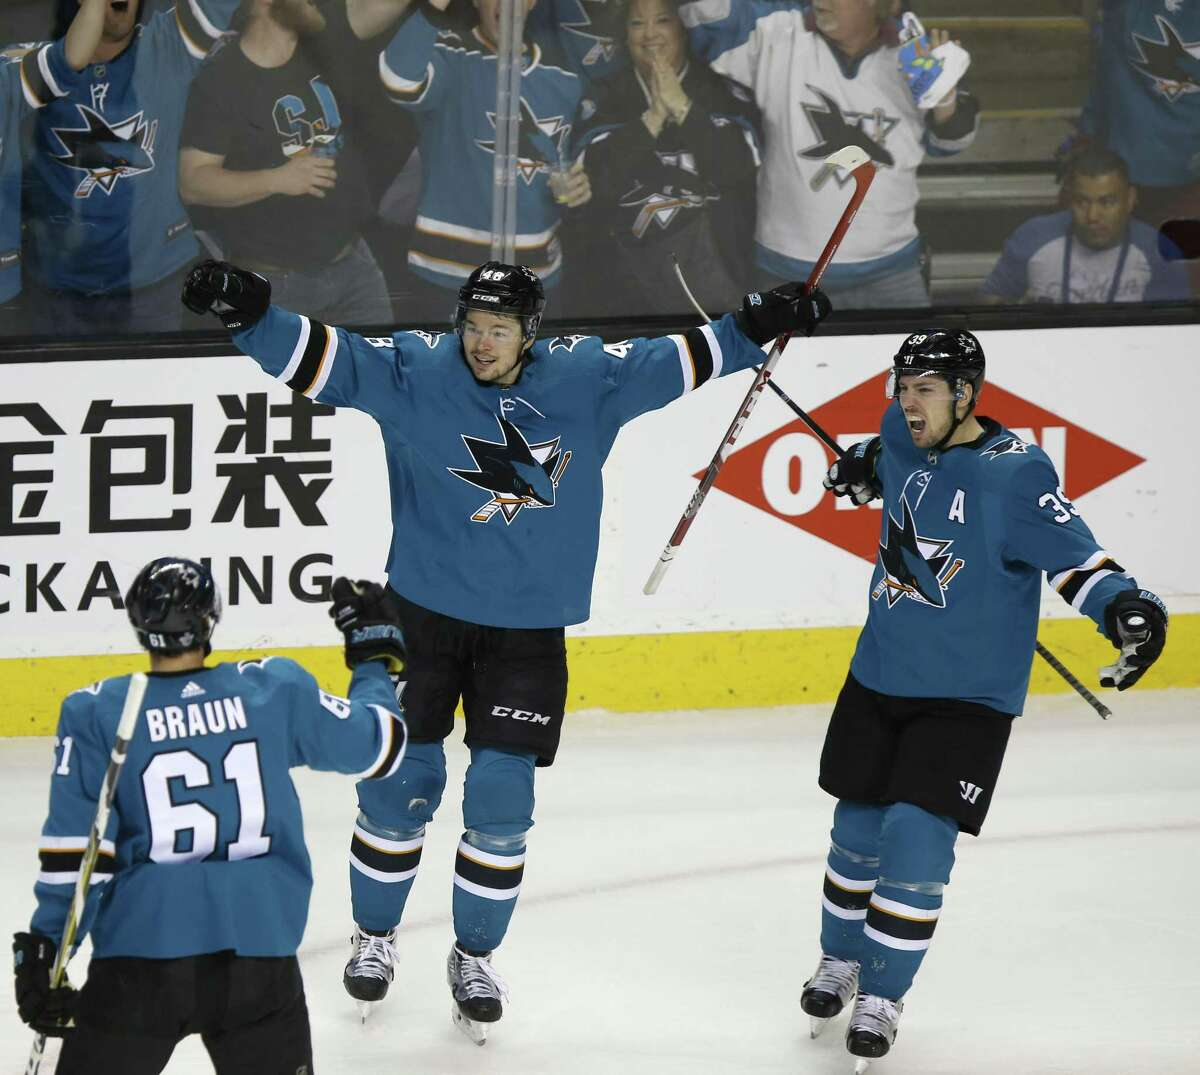 San Jose Sharks' Justin Braun (61), San Jose Sharks' Tomas Hertl (48), who celebrates after scoring 2-1 goal with San Jose Sharks' Logan Couture (39) against Anaheim Ducks in the third period of Game 4 of an NHL third round playoff series on Wednesday, April 18, 2018 at the SAP Center in San Jose, California.